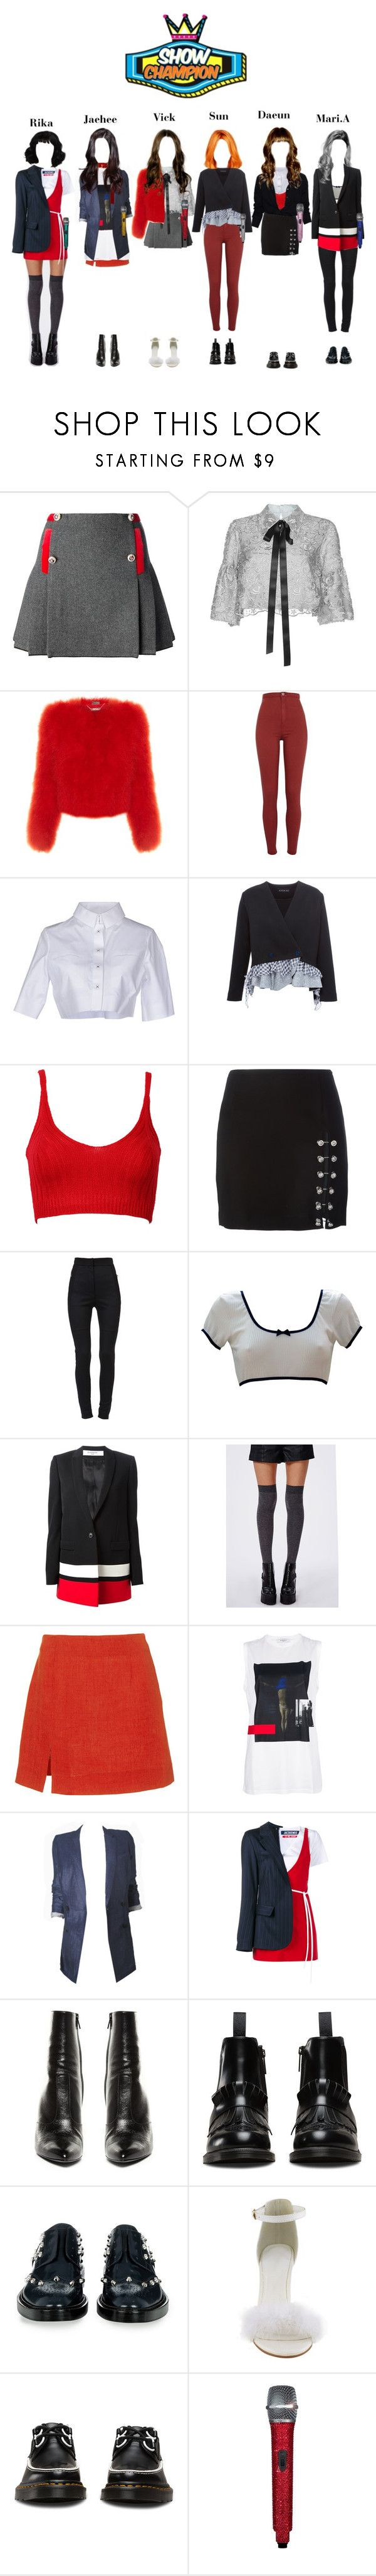 """Show Champion StarZ- Lucky Baby"" by starz-official ❤ liked on Polyvore featuring FAY, Costarellos, Alexander McQueen, River Island, Alexander Wang, Anouki, WithChic, Versus, Dolce&Gabbana and Givenchy"